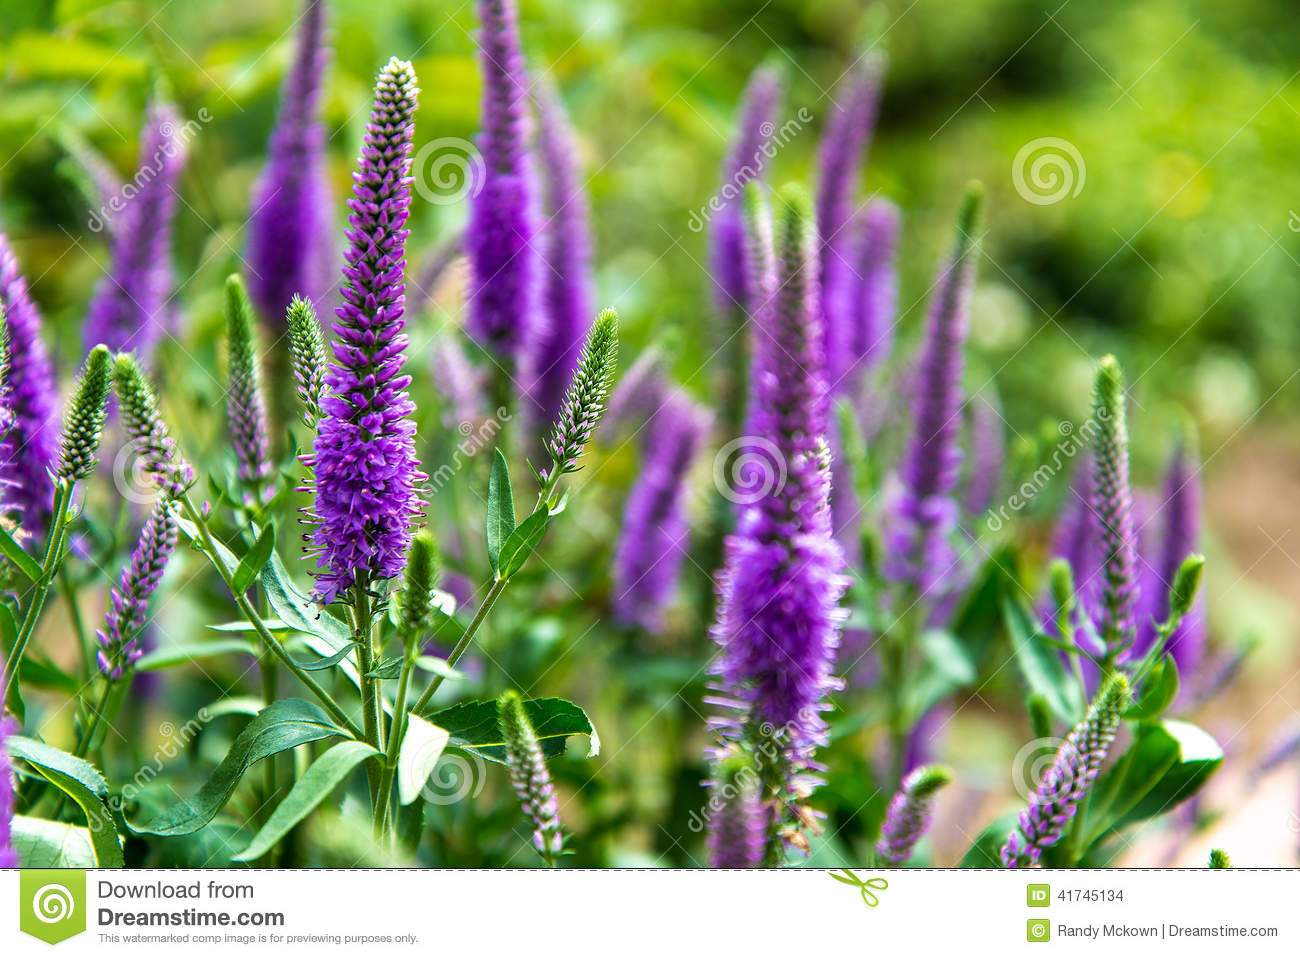 Image result for meadow blazing star plants pinterest plants mightylinksfo Gallery